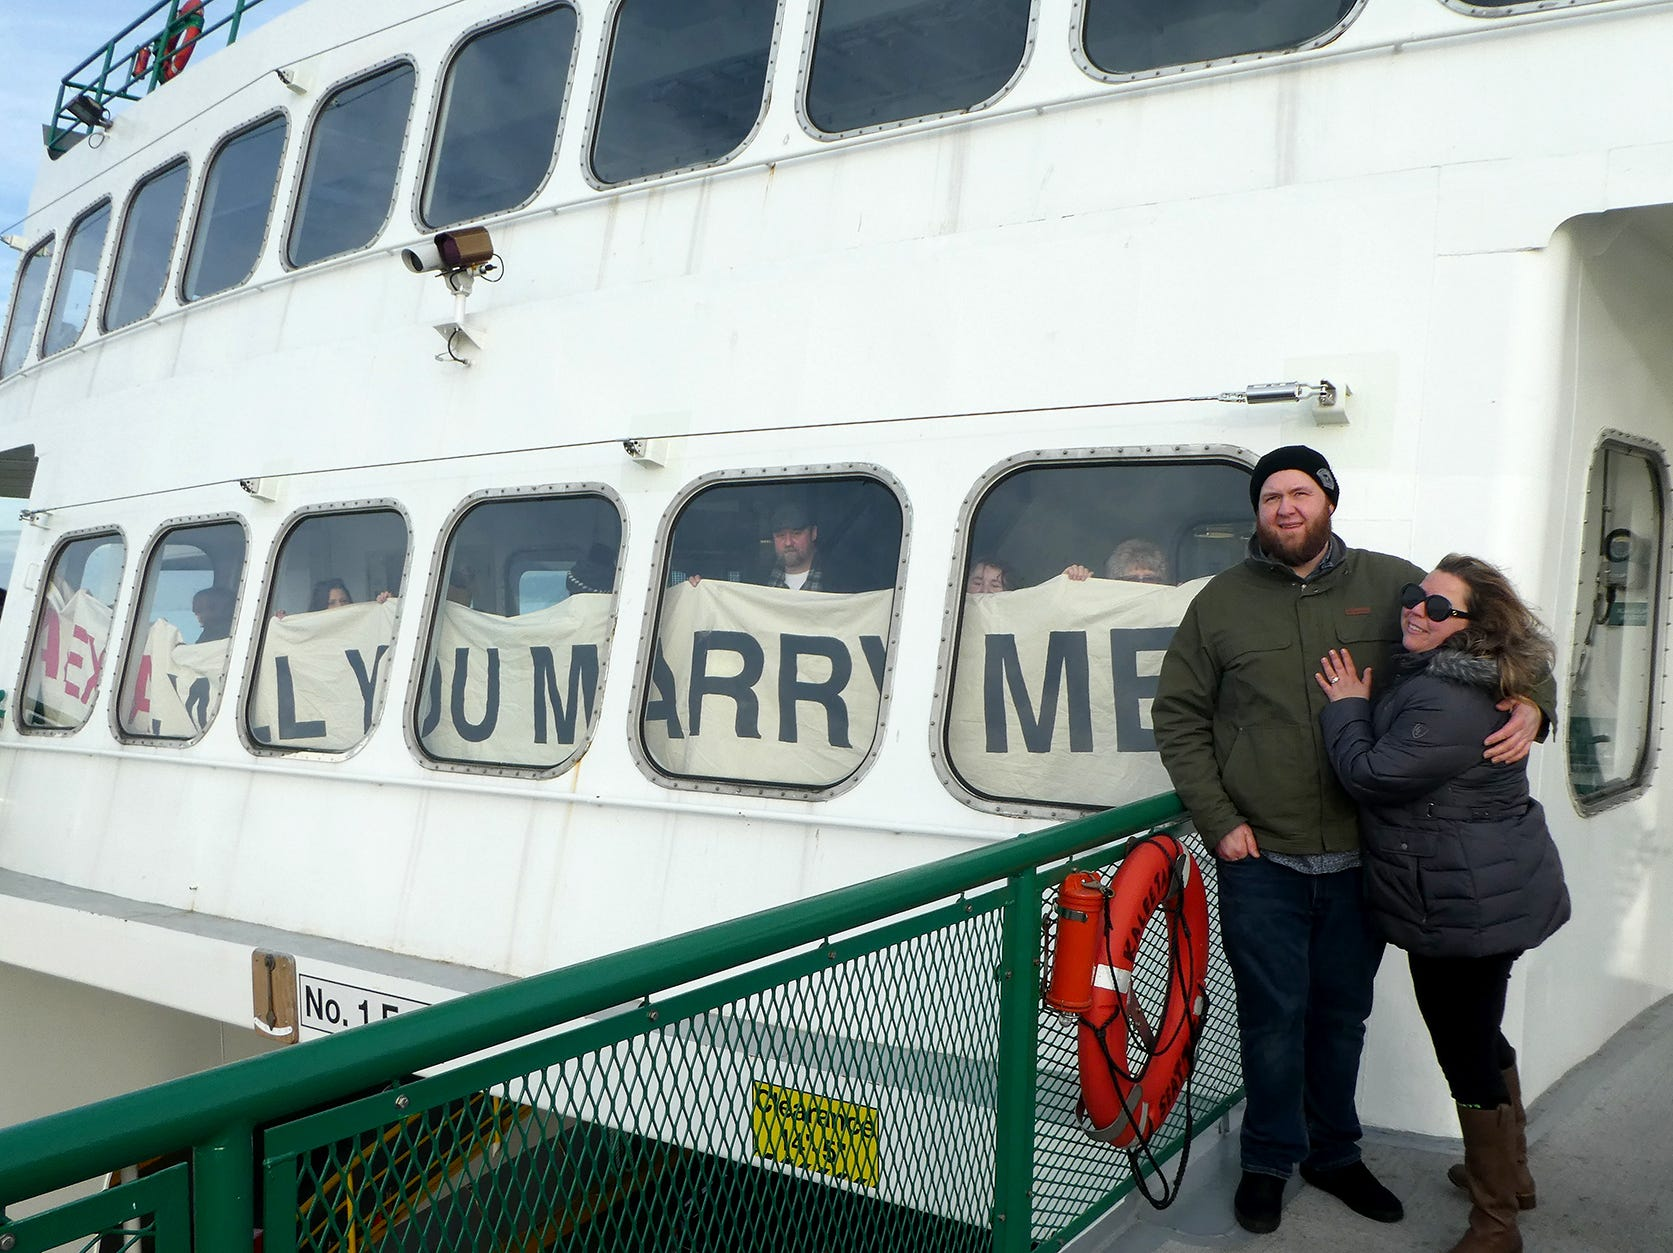 Friends and family hold up a will you marry me banner for Josh Batway and Alexia Haney of Seattle on the Kaleetan ferry ride from Seattle to Bremerton on Tuesday, January 1, 2019. He proposed to her on the ferry on their way to Aldberbrook on the Hood Canal.